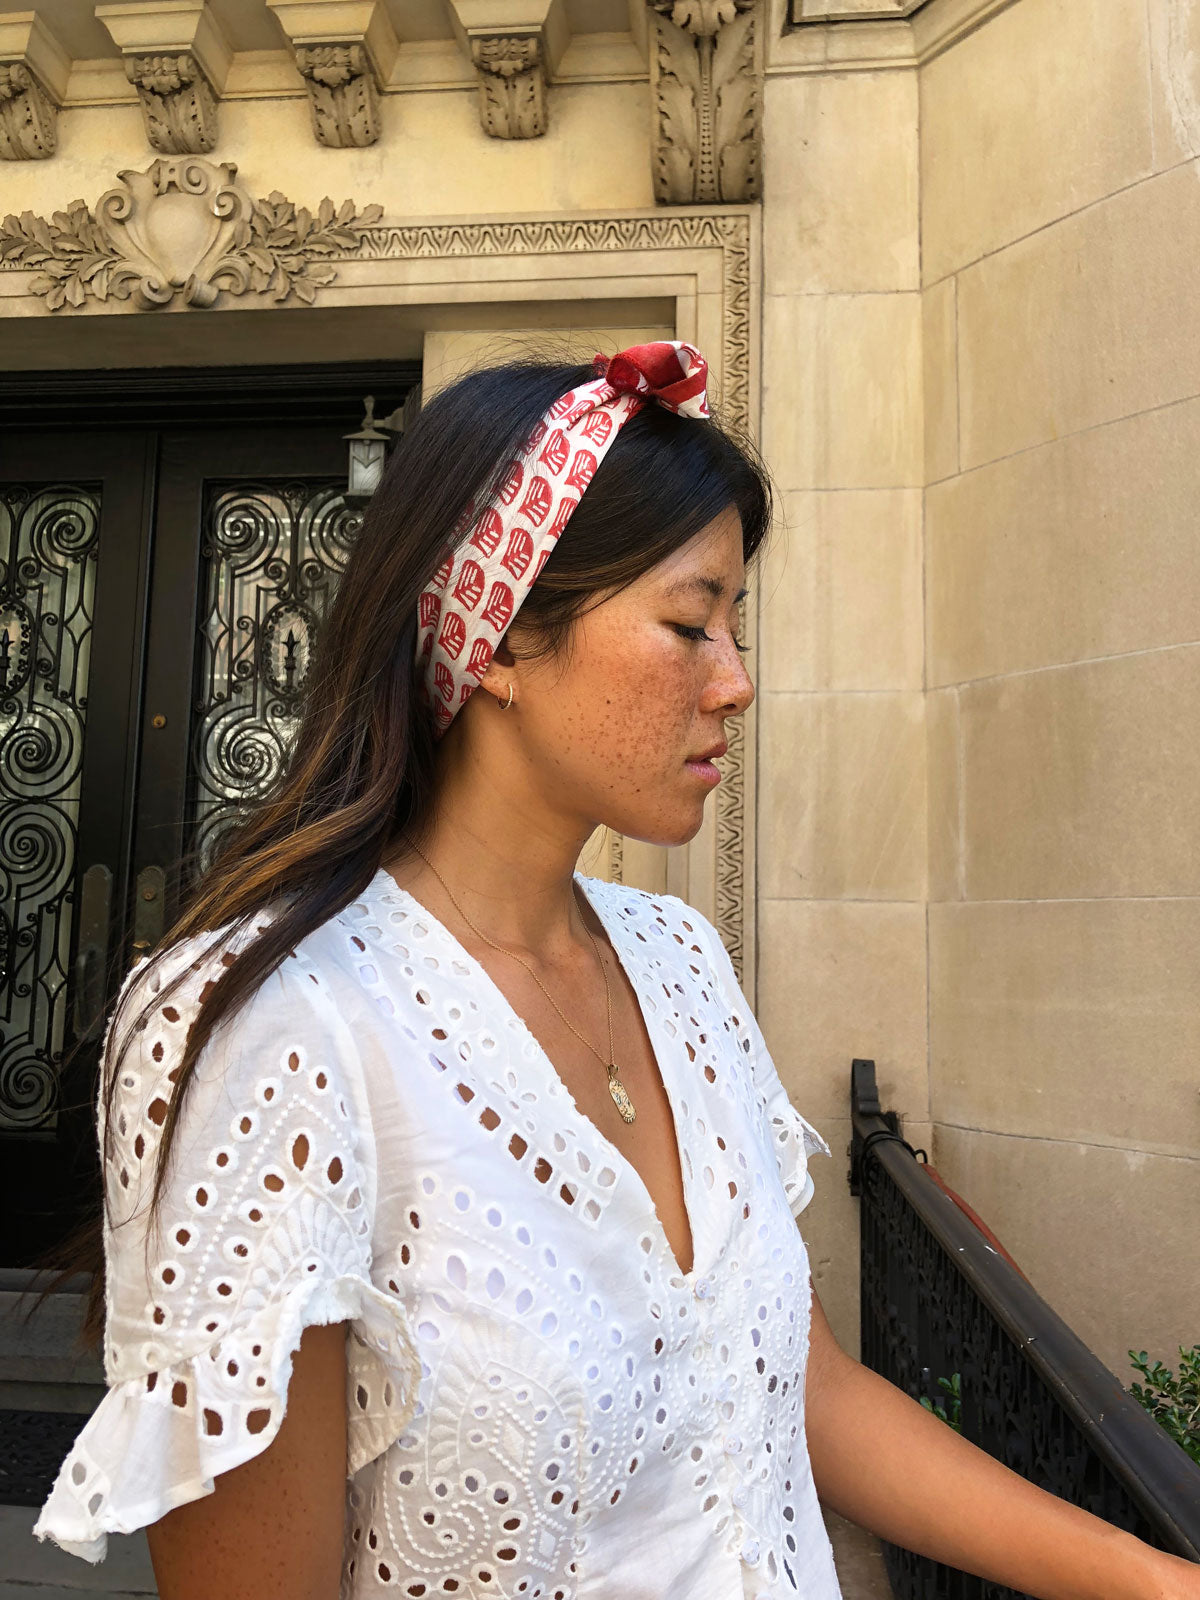 Perfect lightweight bandana for summer! Hand block printed in Bagru, India by master printers. Vibrant scarlet red color, perfect for adding a chic touch to any outfit.